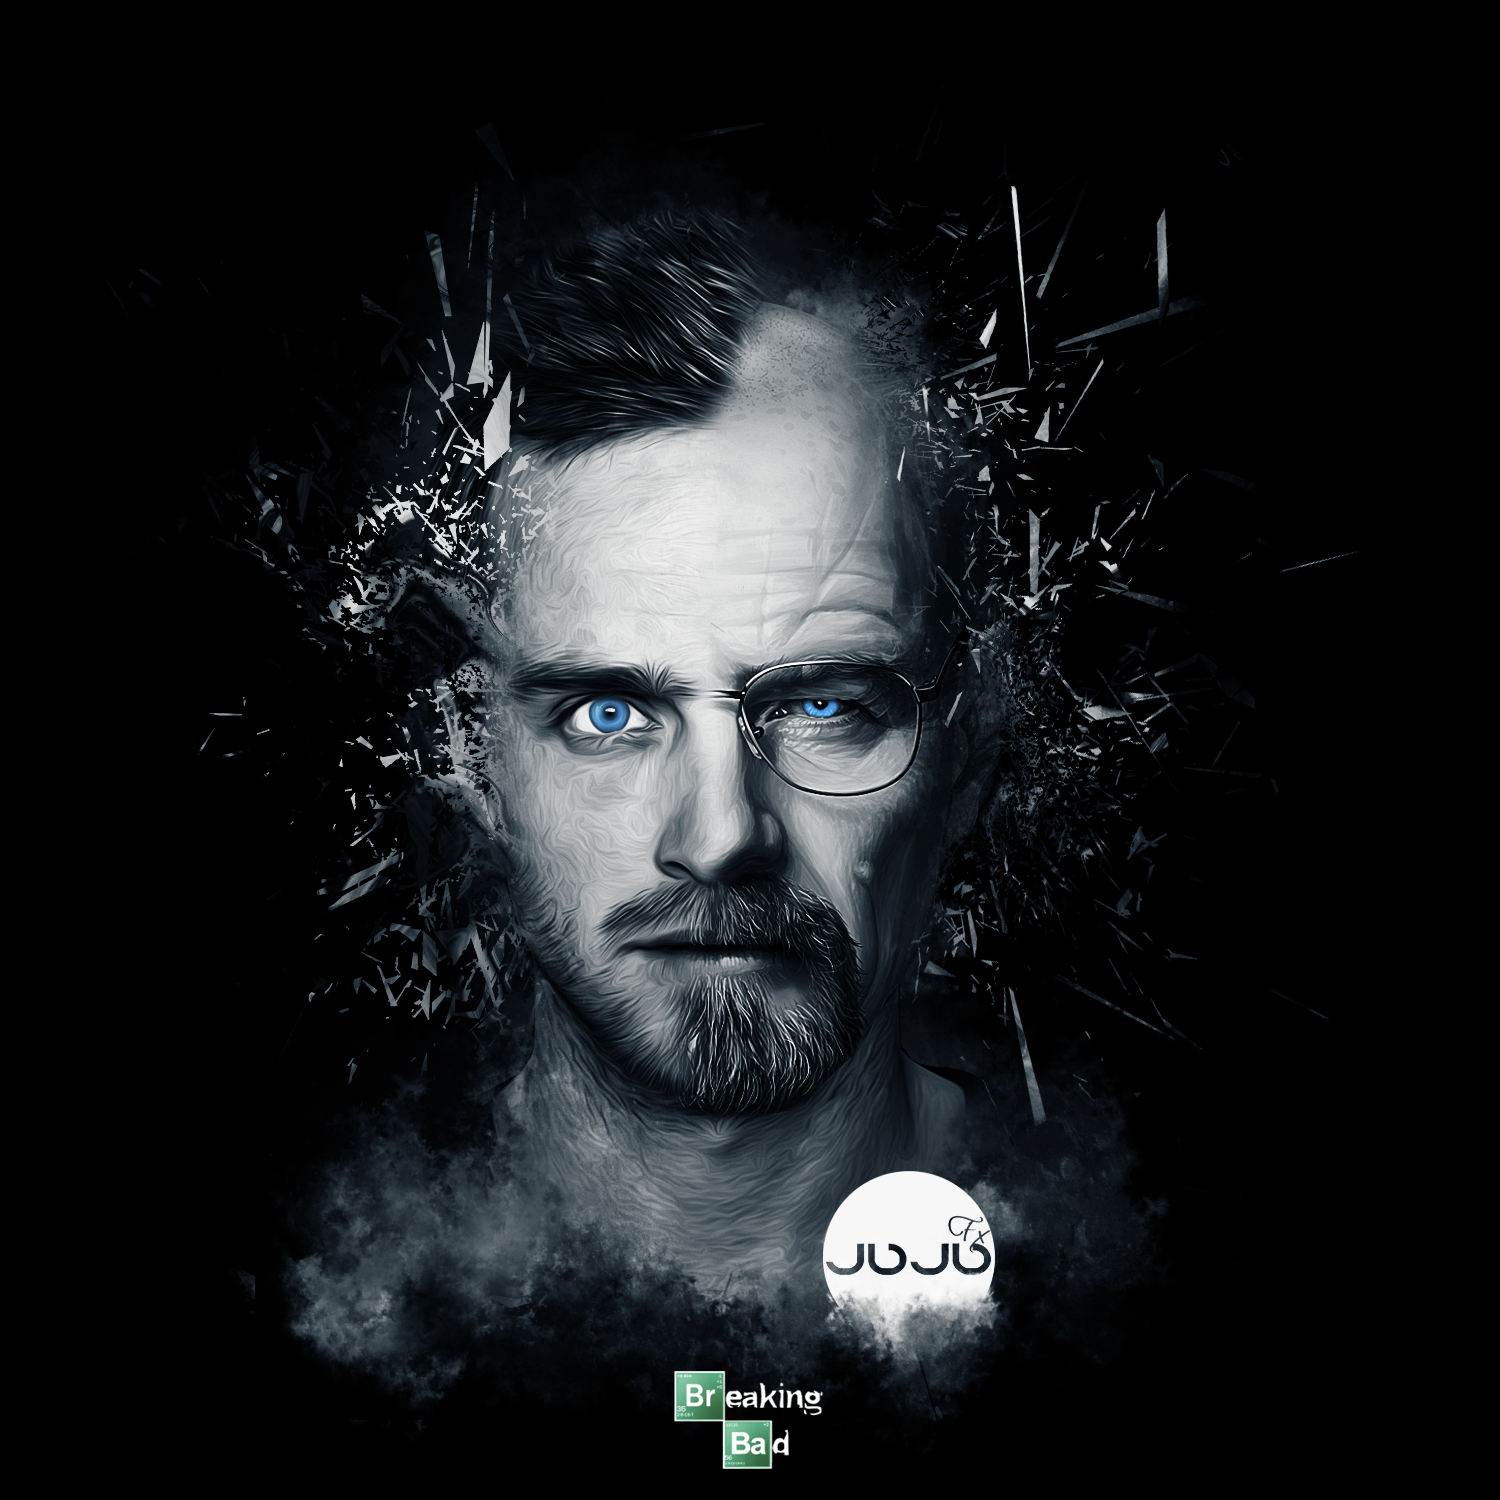 Wallpaper Iphone Breaking Bad: Breaking Bad (Jesse White) By JuJuFX On DeviantArt